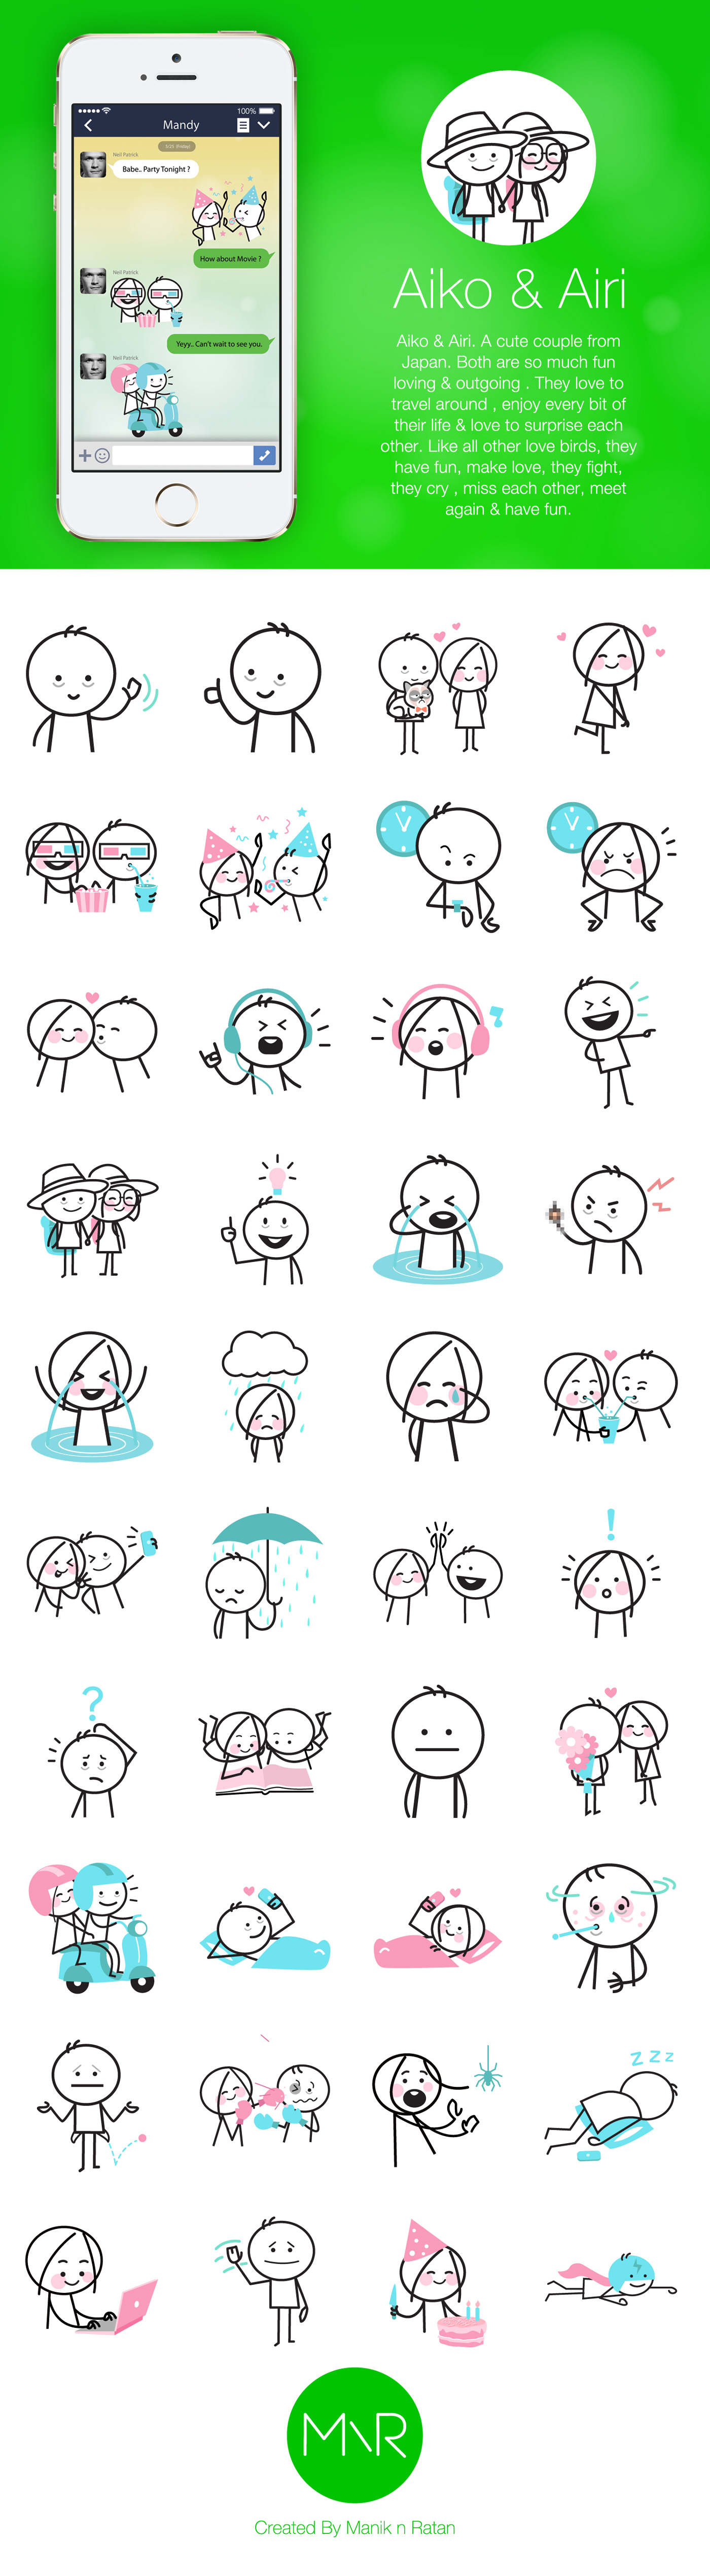 art line sticker japanese couple Chat vector Character sticky Love romantic doodle Line Sticker simple simplified